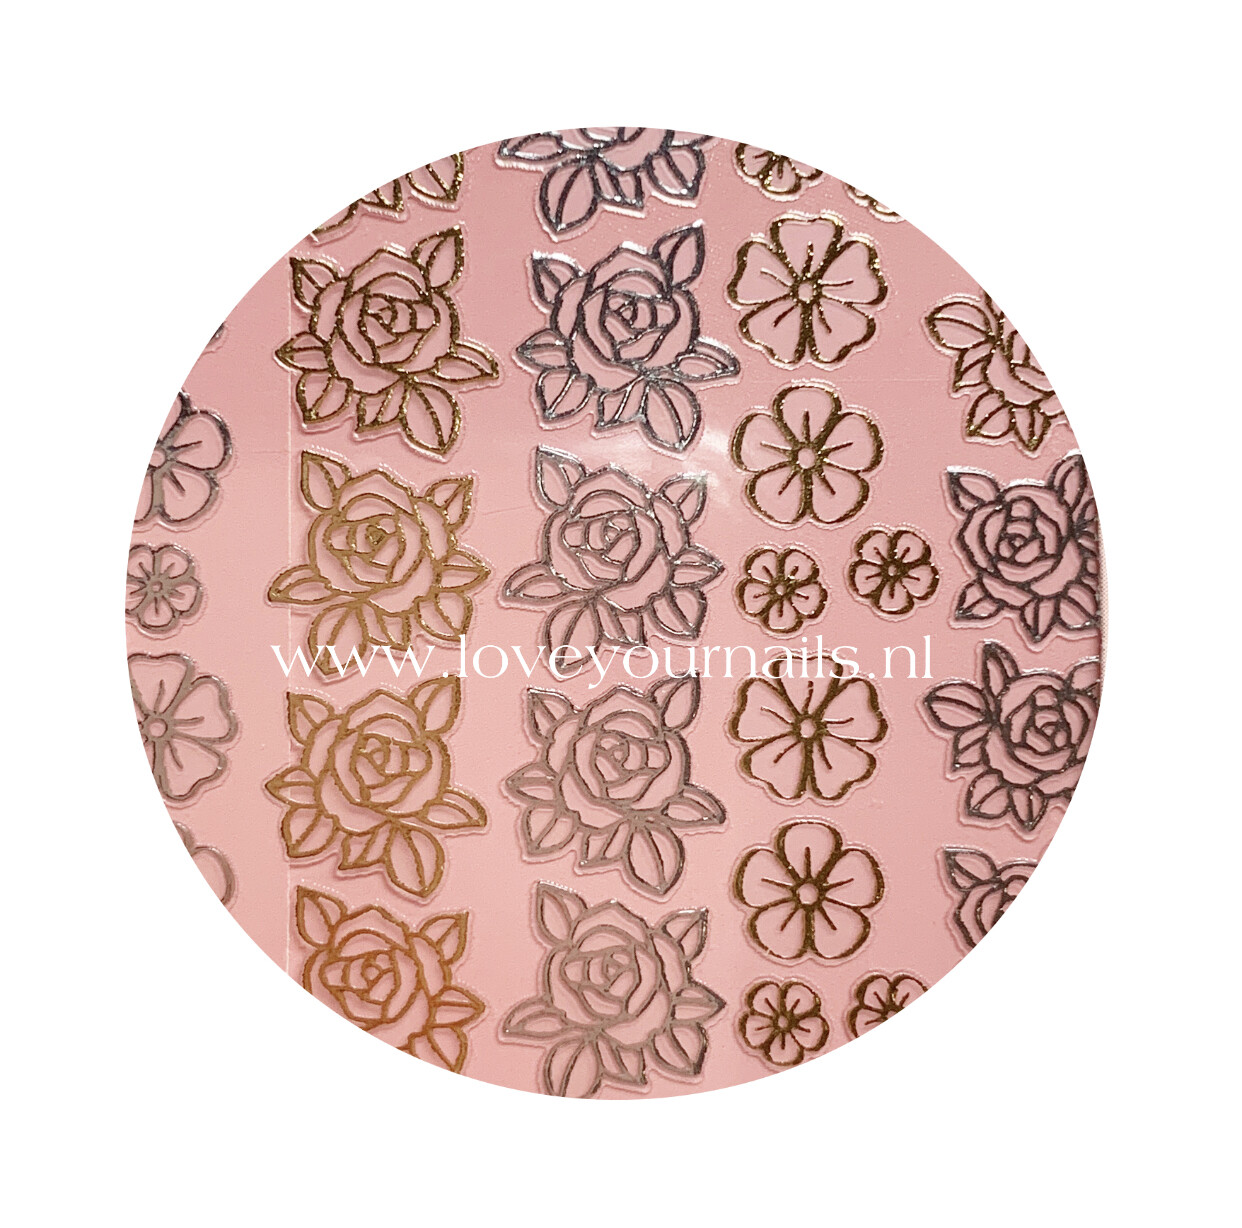 Charmicon Silicone Stickers Flowers MIX #1 Gold/Silver